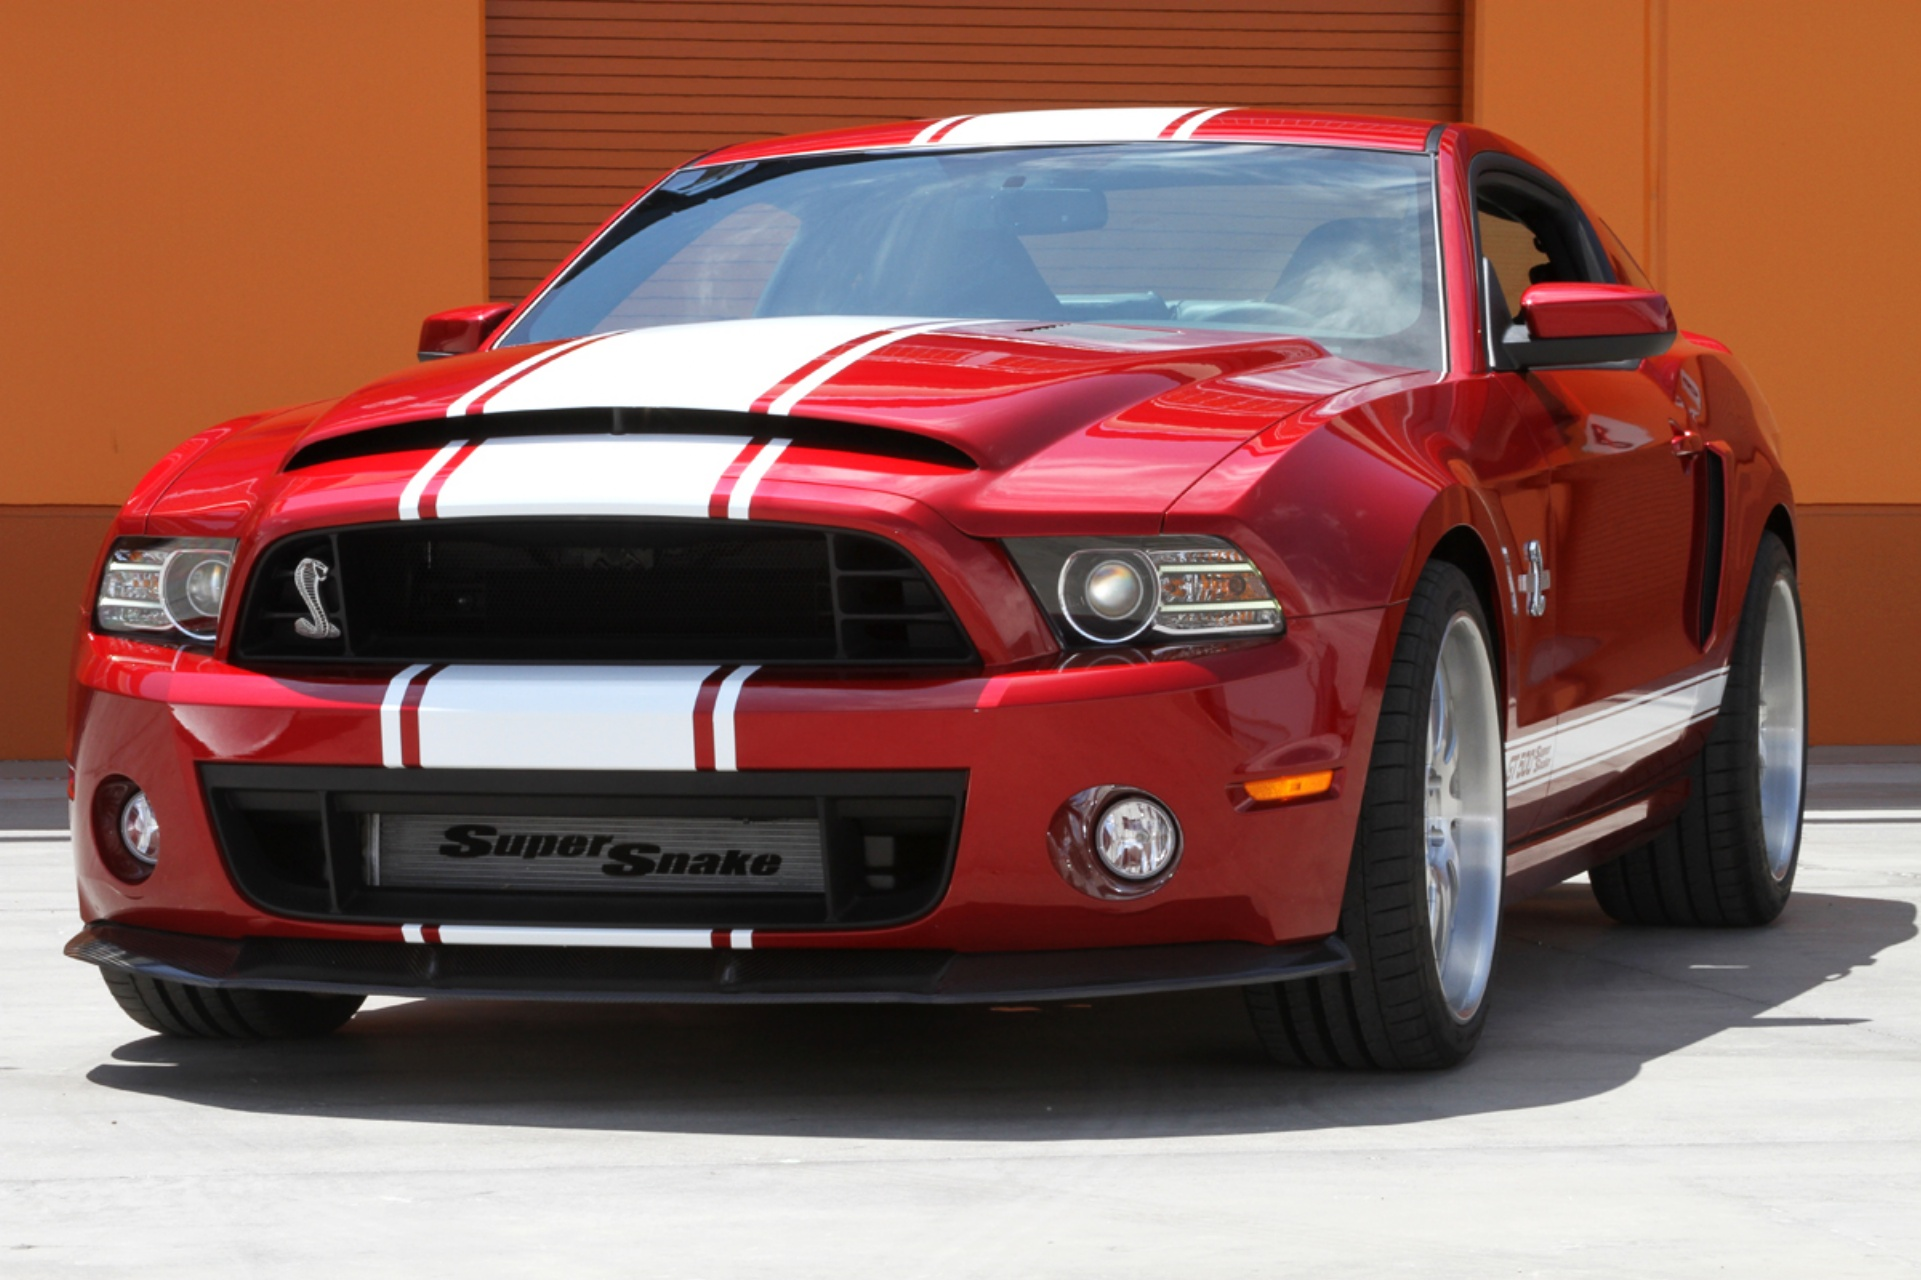 2019 Ford Mustang Shelby Gt500 Cobra Car Photos Catalog 2018